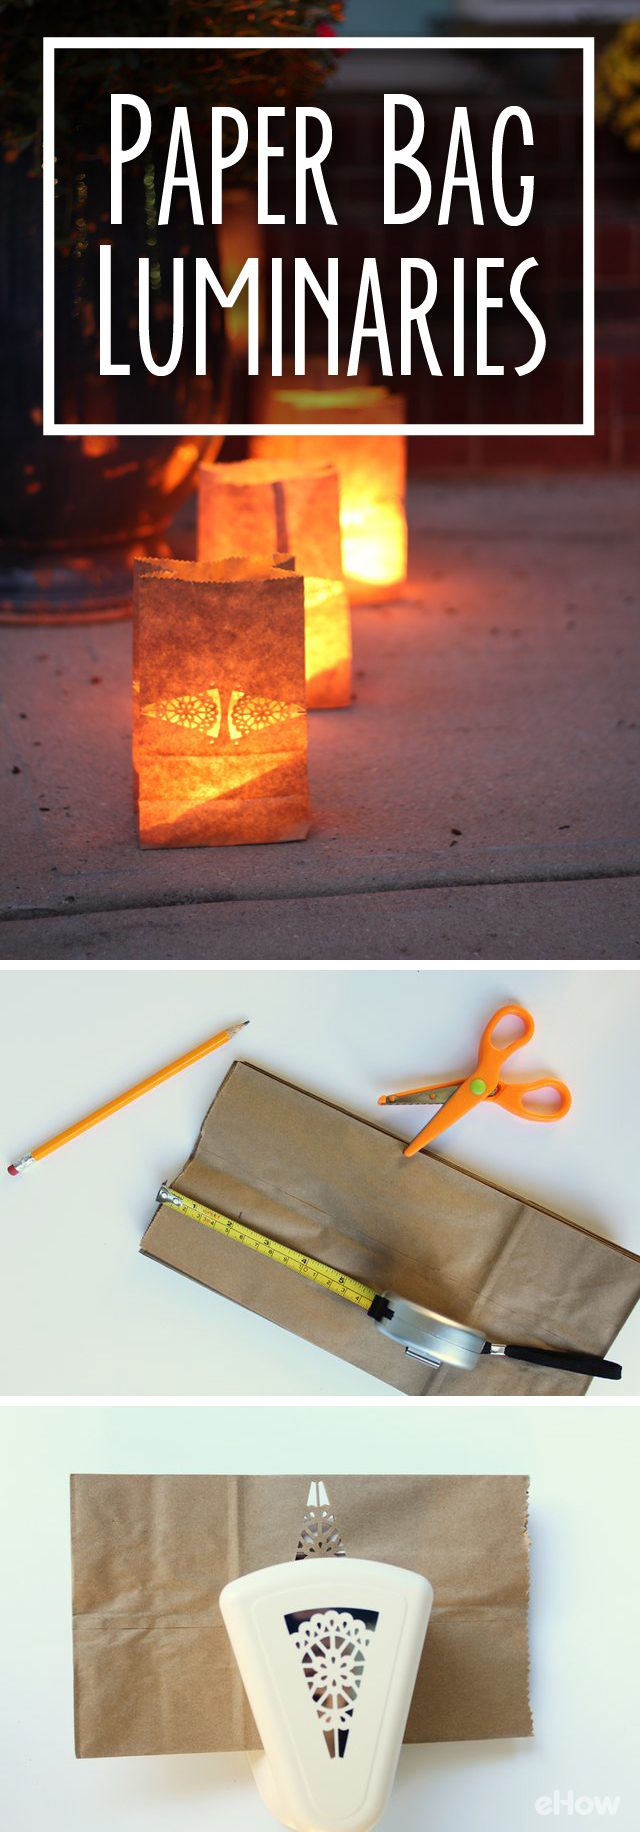 How to Create Safe Paper Bag Luminaries | Walkways, Create and Bag for Paper Bag Lanterns Diy  54lyp